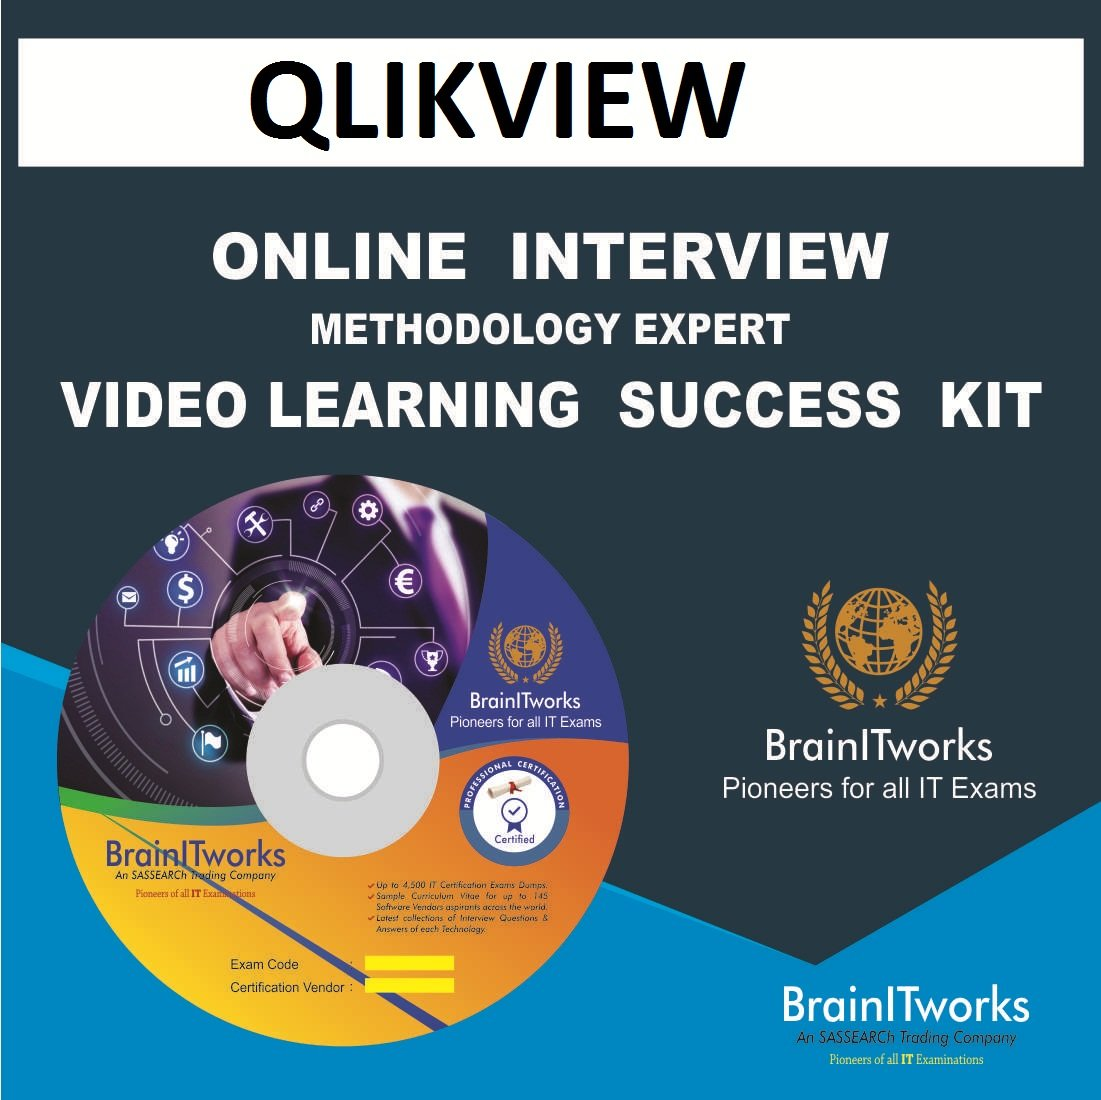 Amazon Buy Qlikview Online Interview Video Learning Success Kit